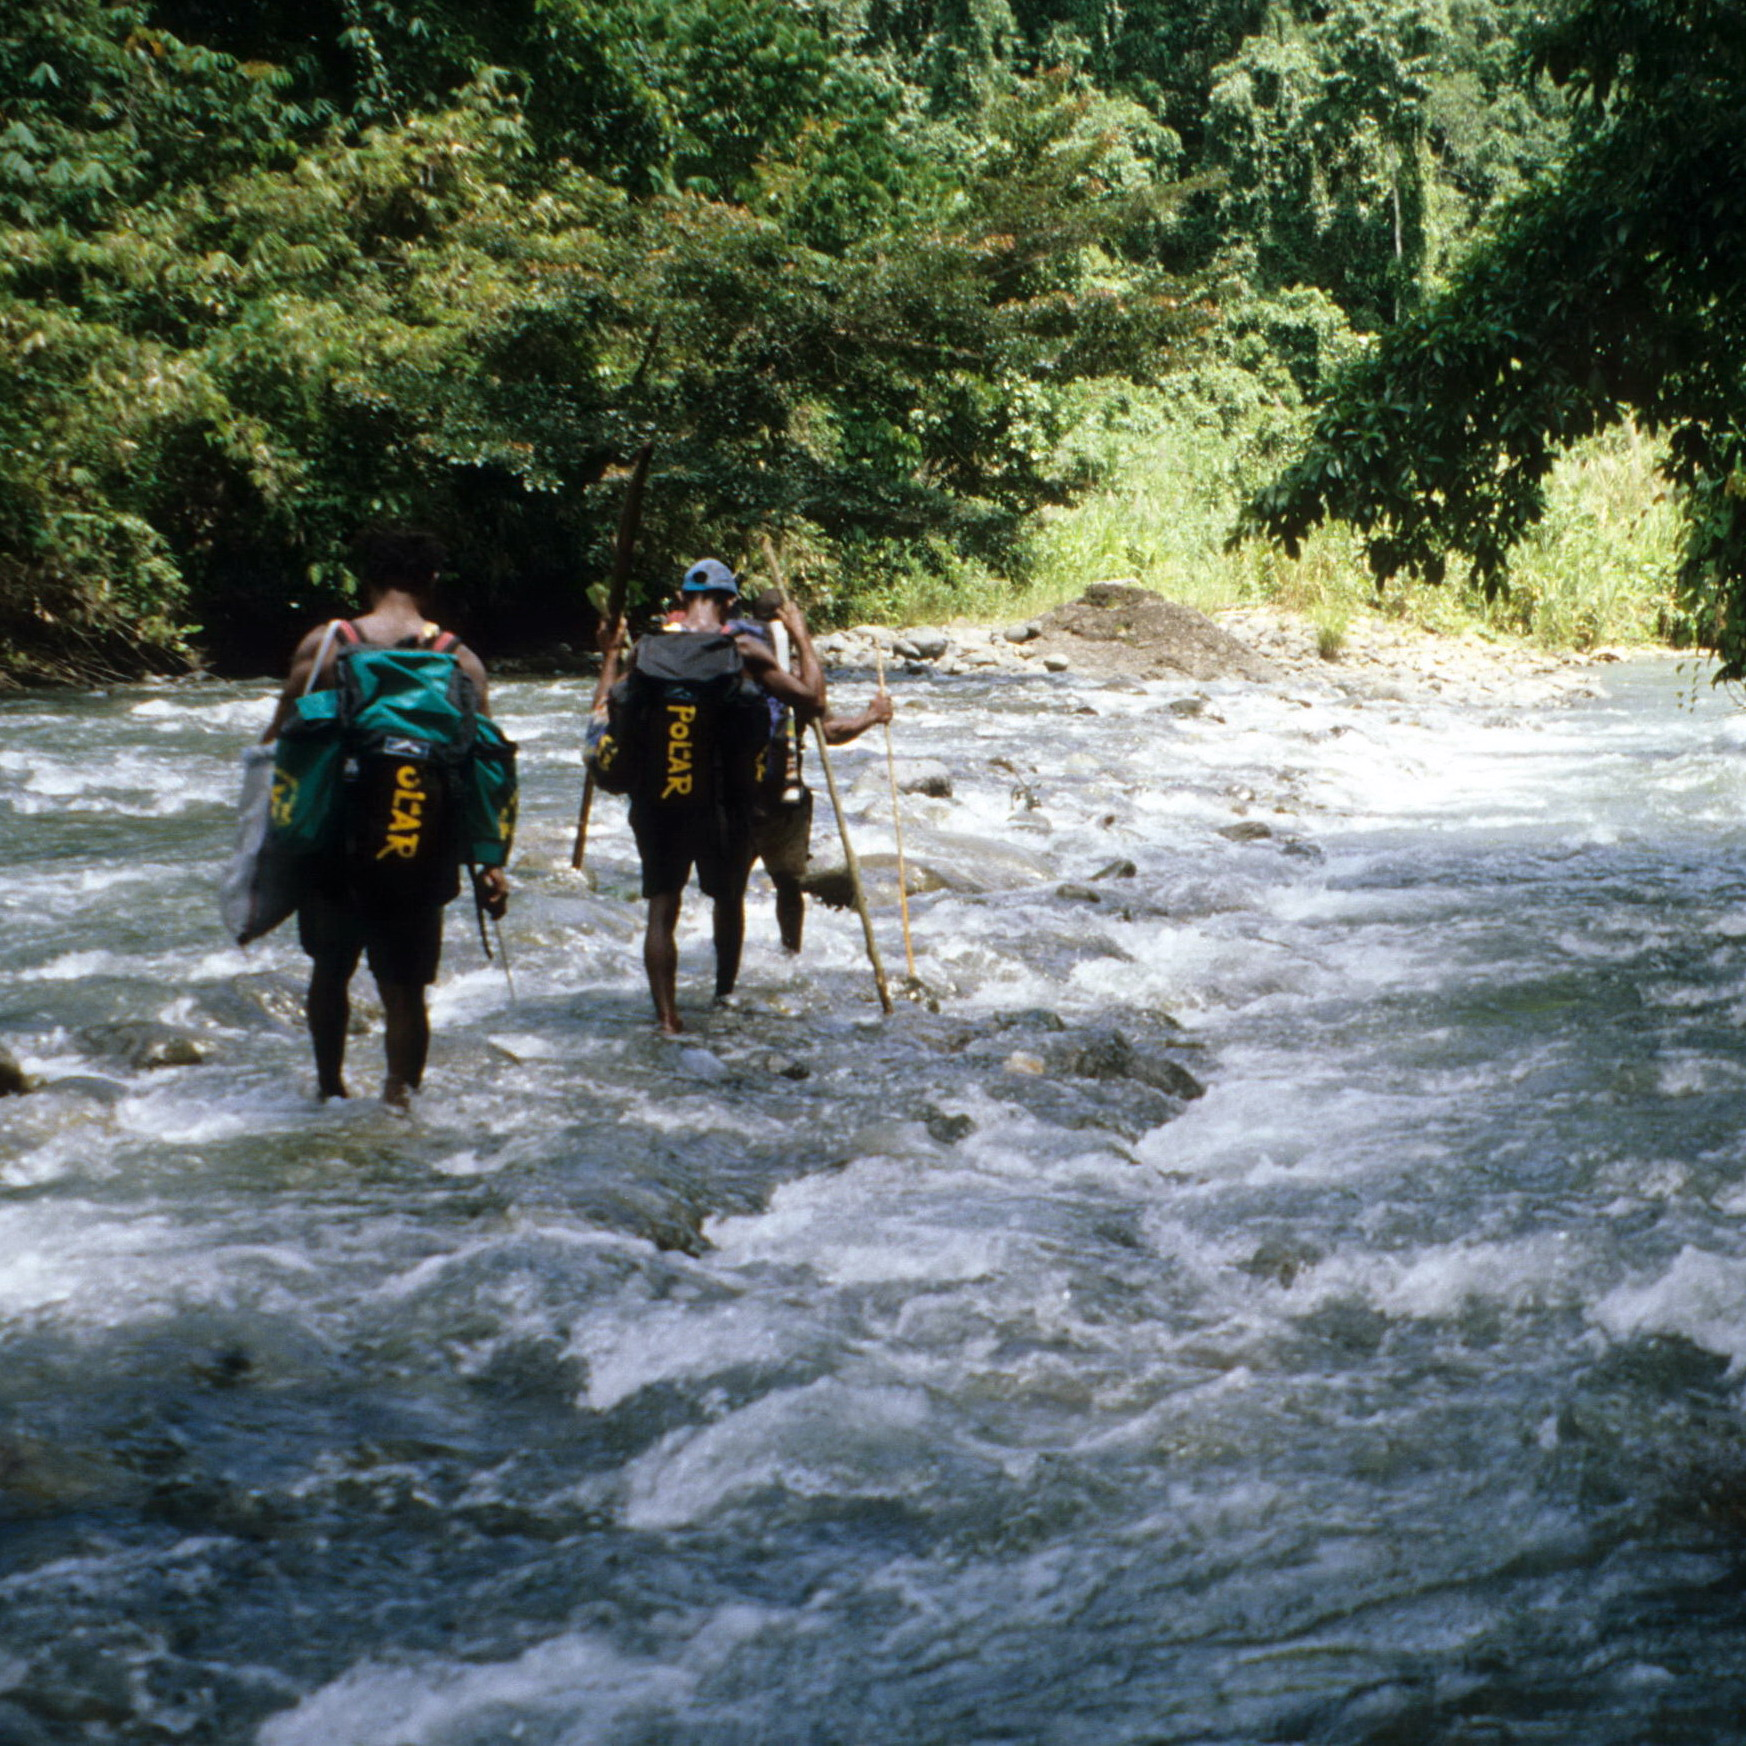 Men Crossing Whitewater River, New Guinea Field Collecting for Oceanic Art